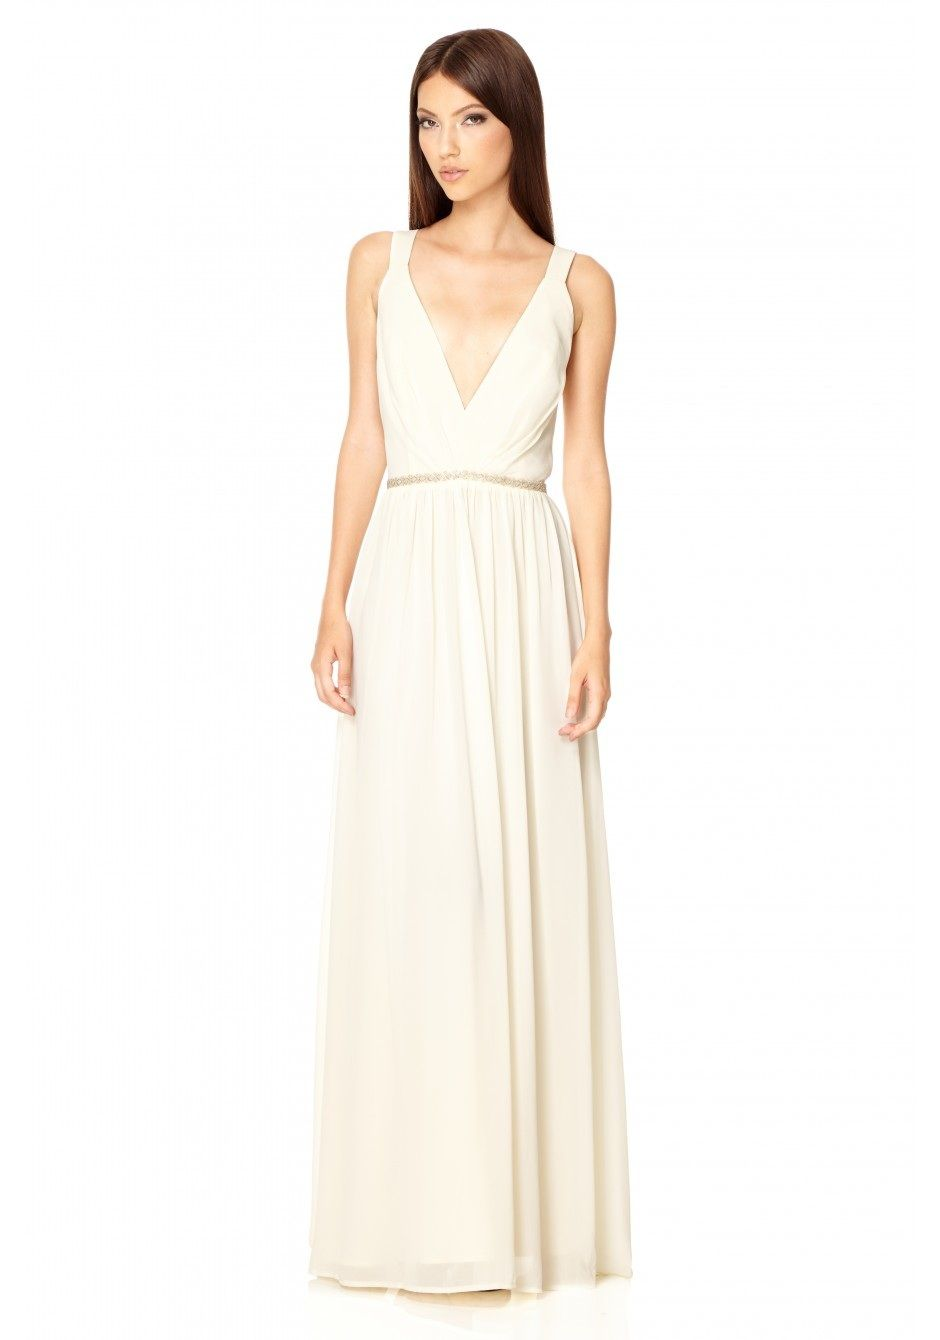 The Jarlo London Cristobel Dress in ivory is a truly stunning ...